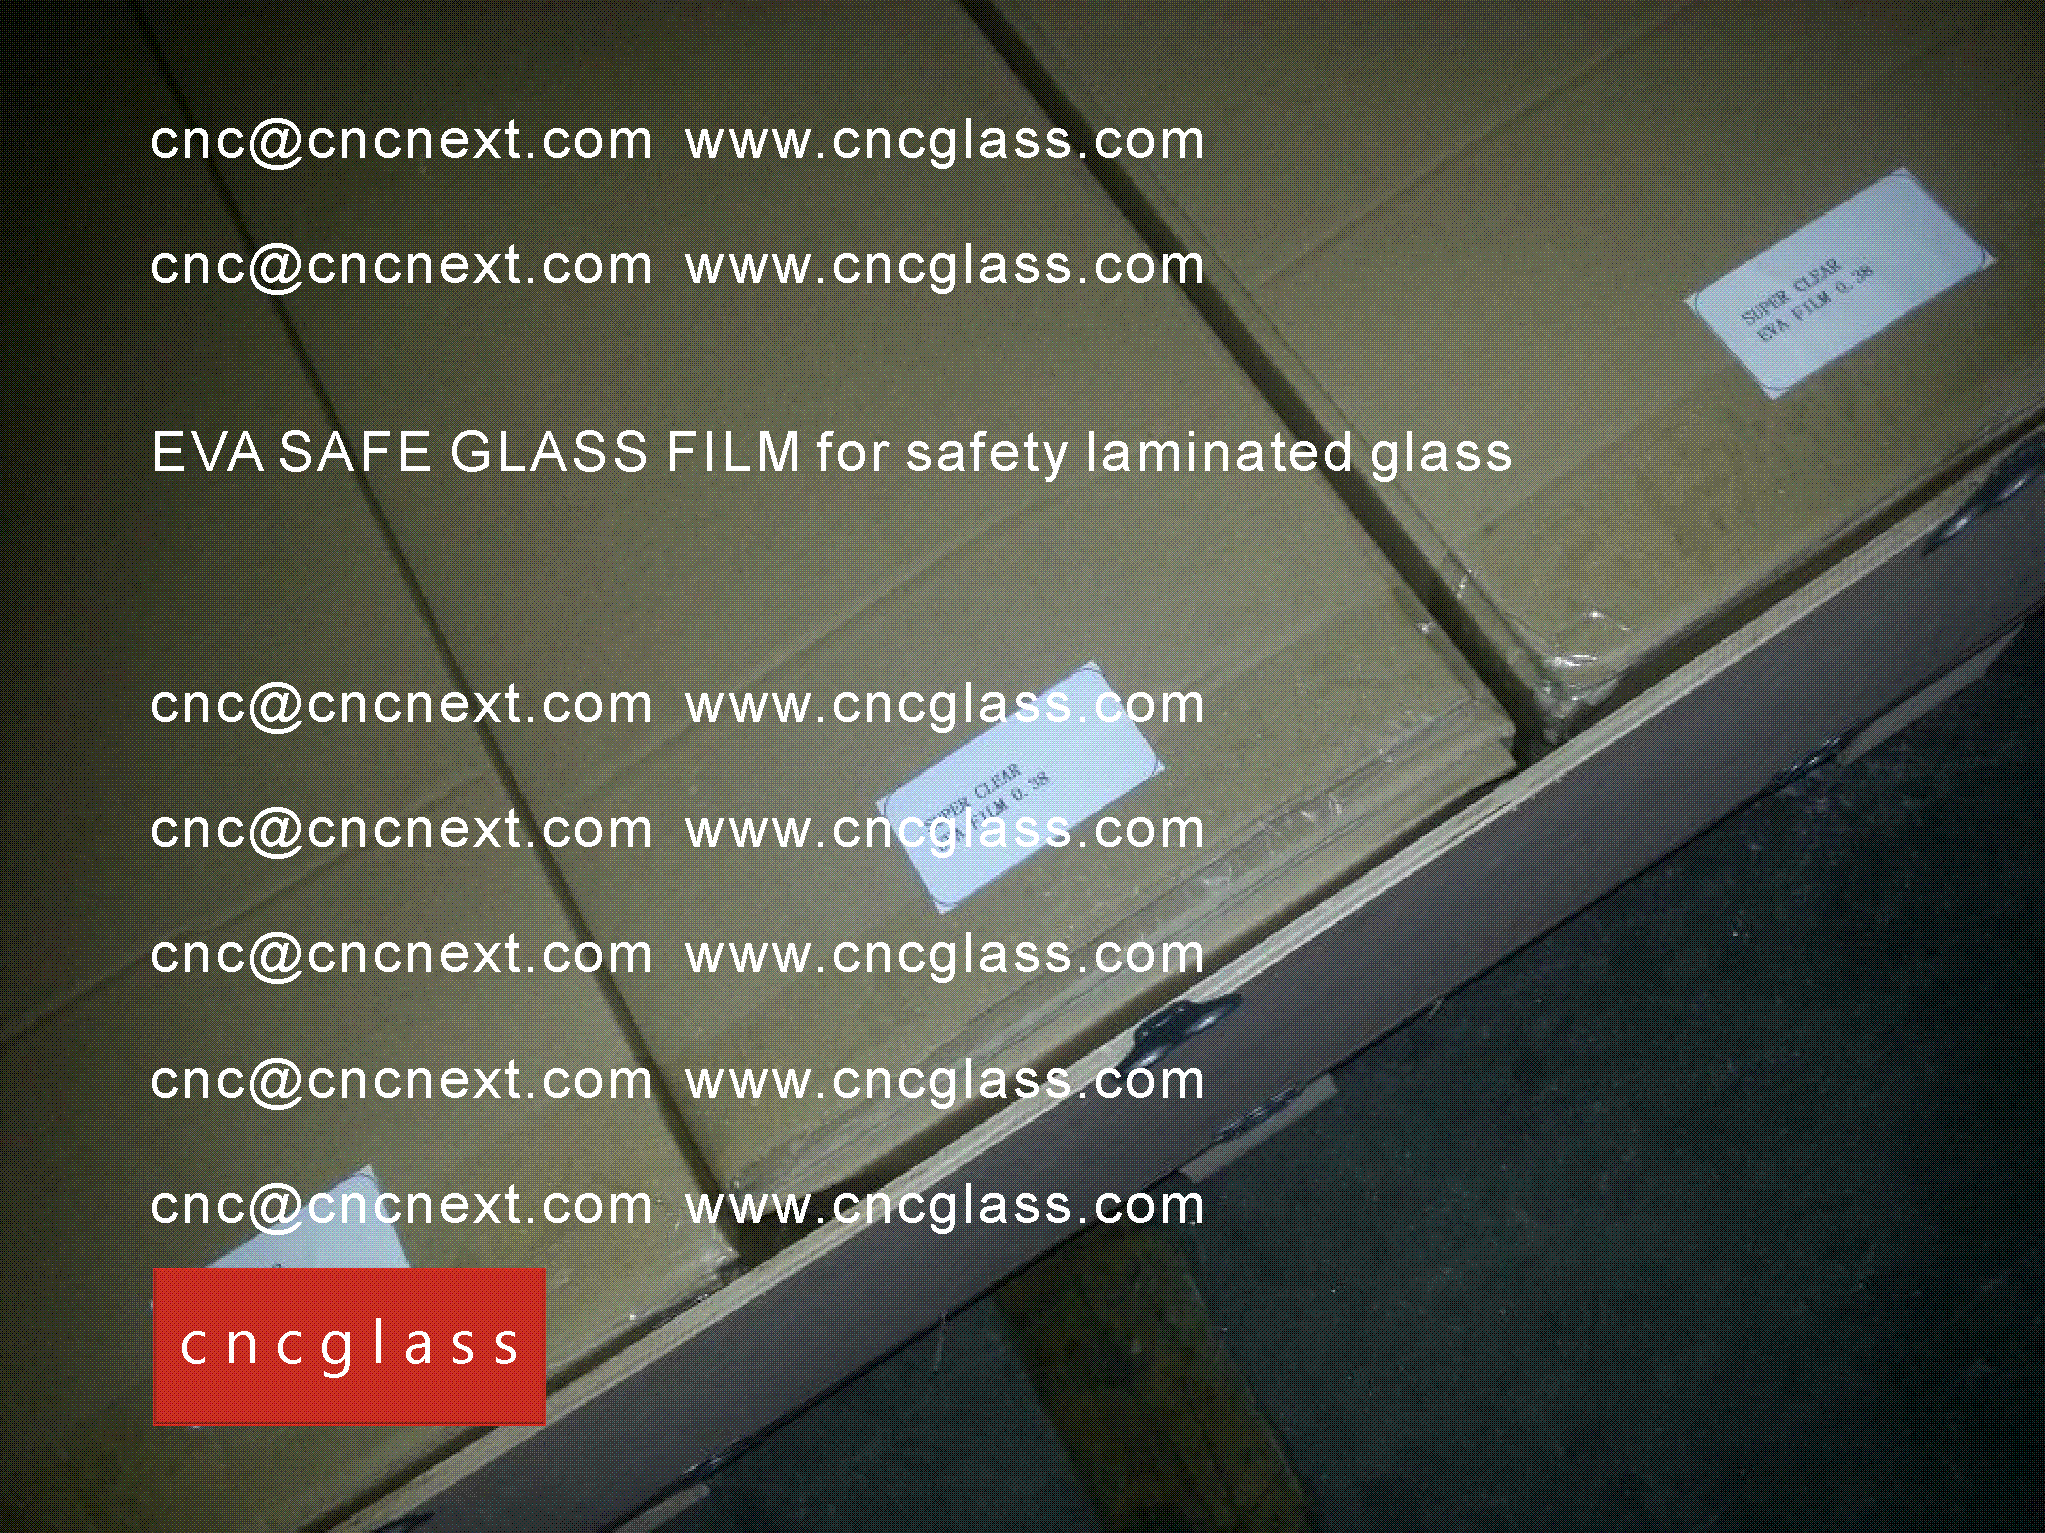 009 EVA SAFE GLASS FILM LOADING CONTAINER (SAFETY LAMINATED GLASS)